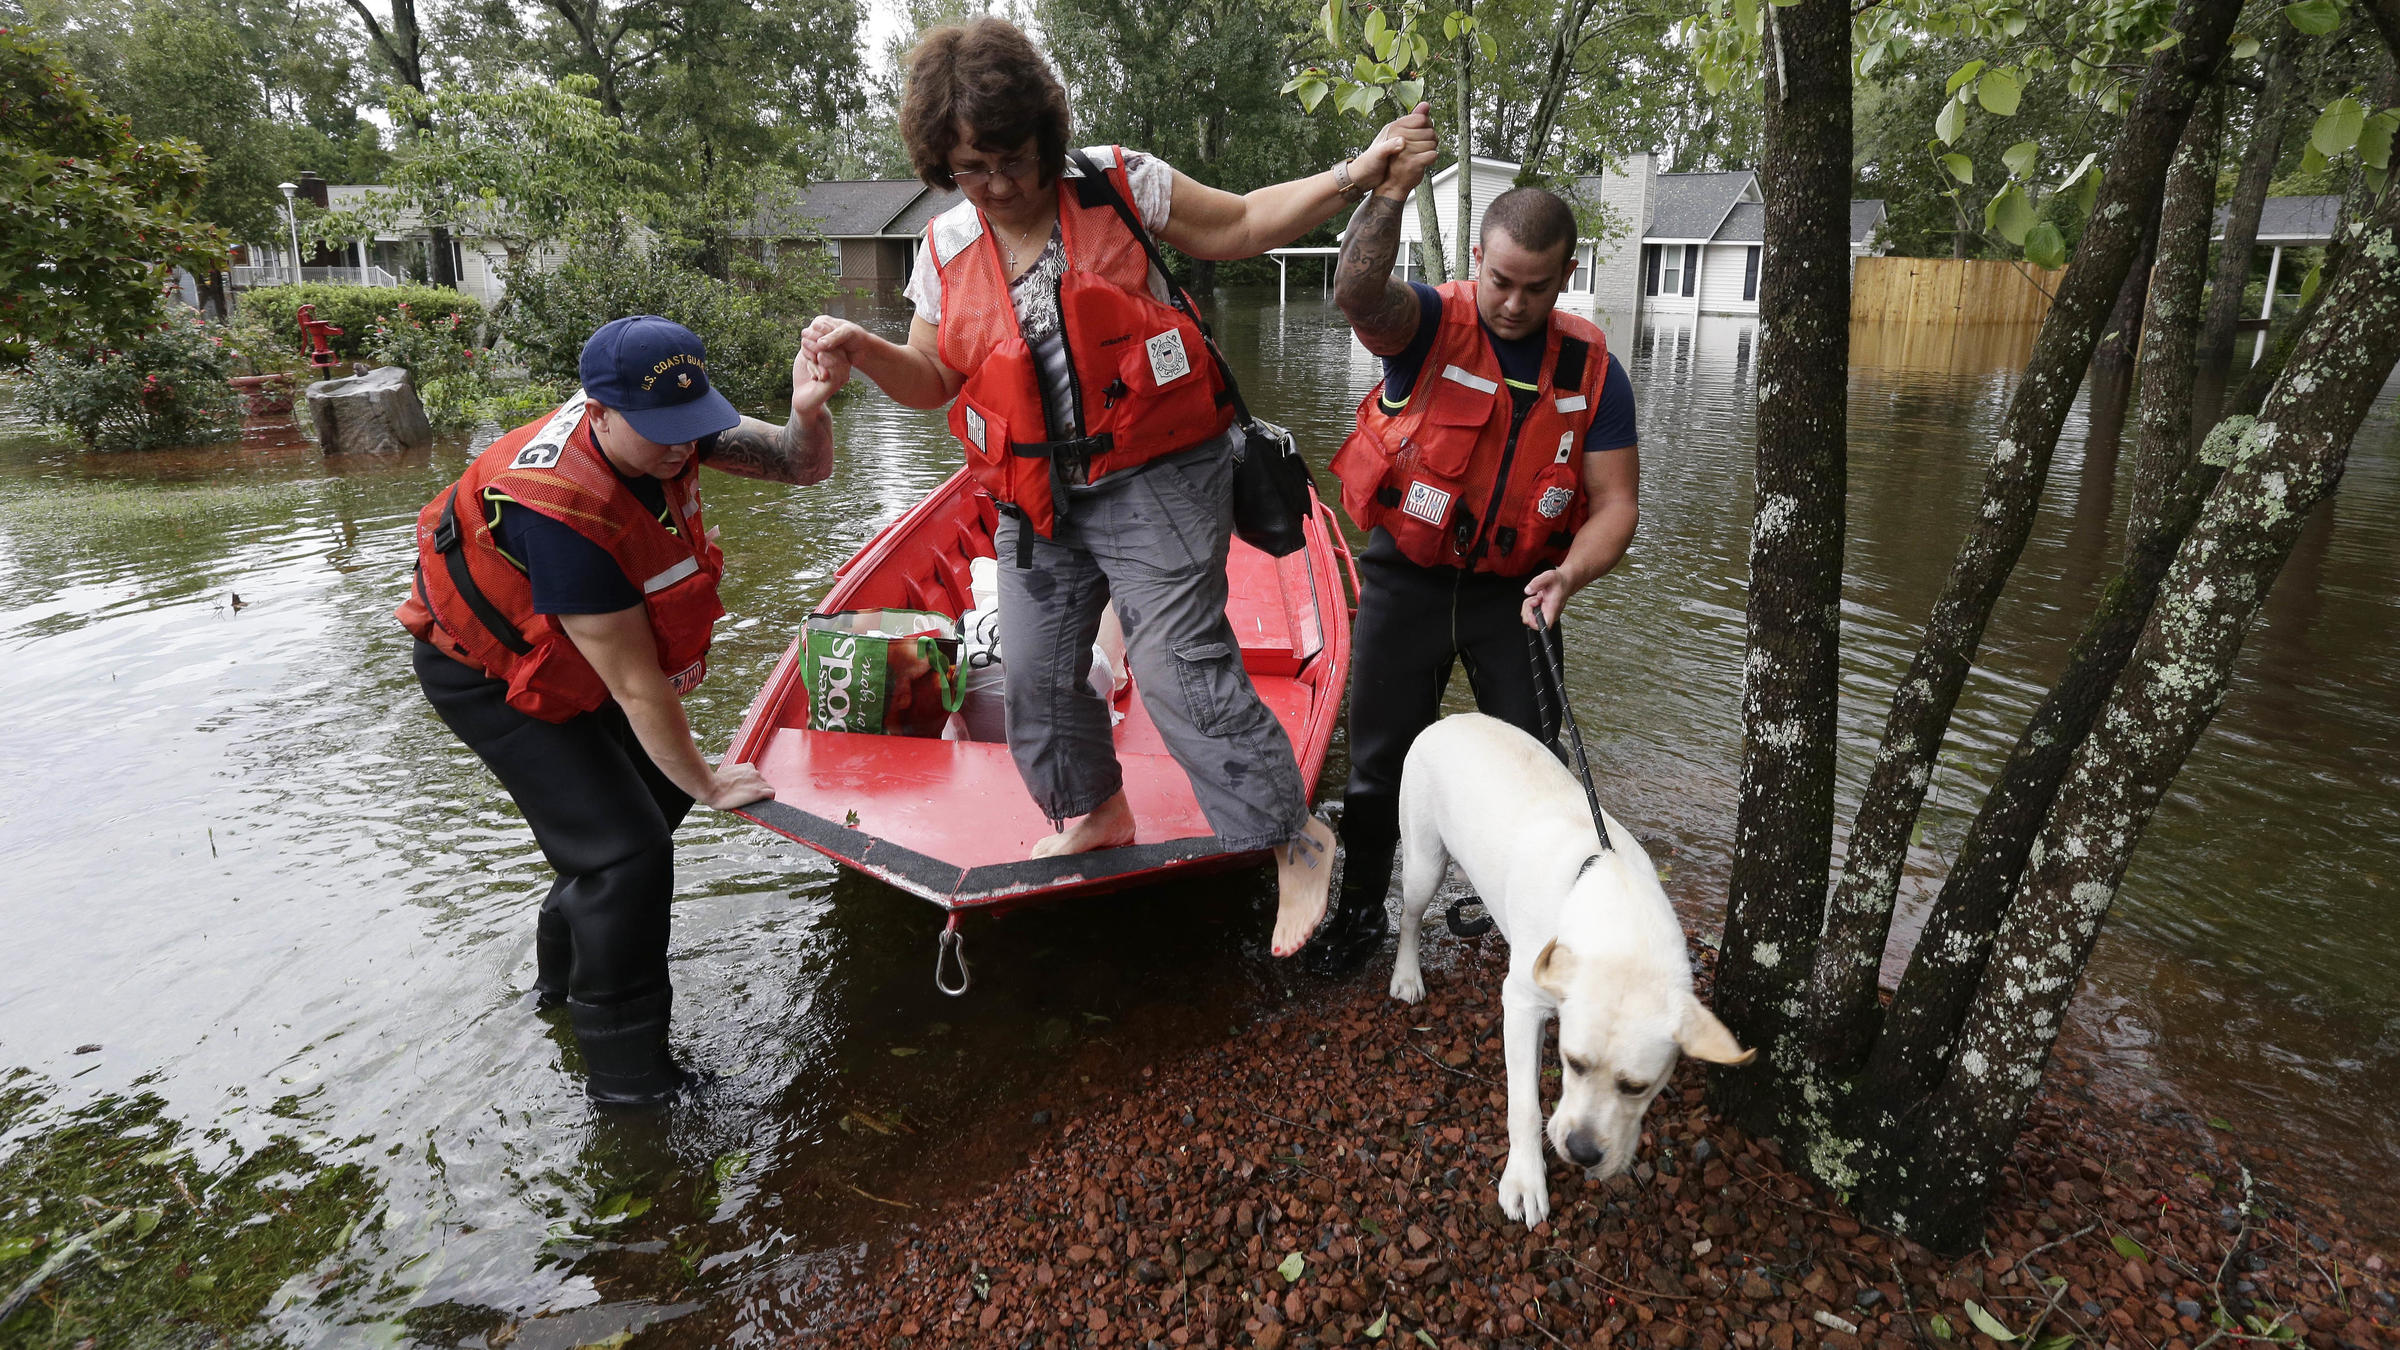 Millions face Florence floods after 'epic' rainfall in Carolinas